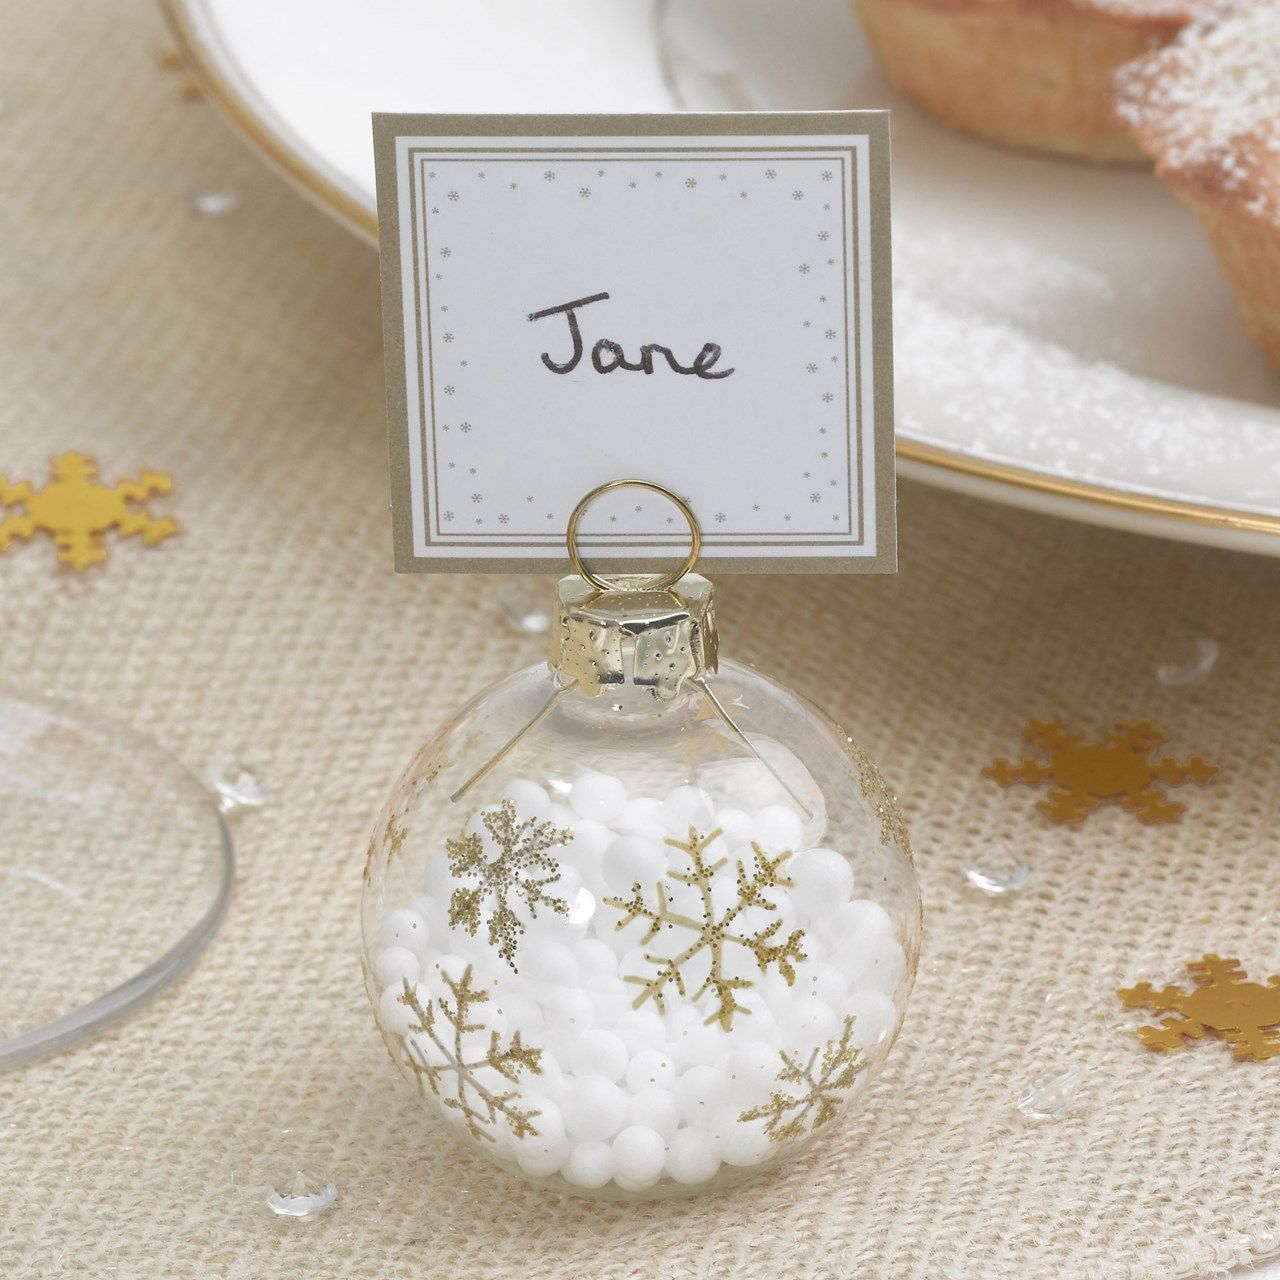 Winter Wonderland - Bauble Place Card Holders | UK Wedding Favours ...